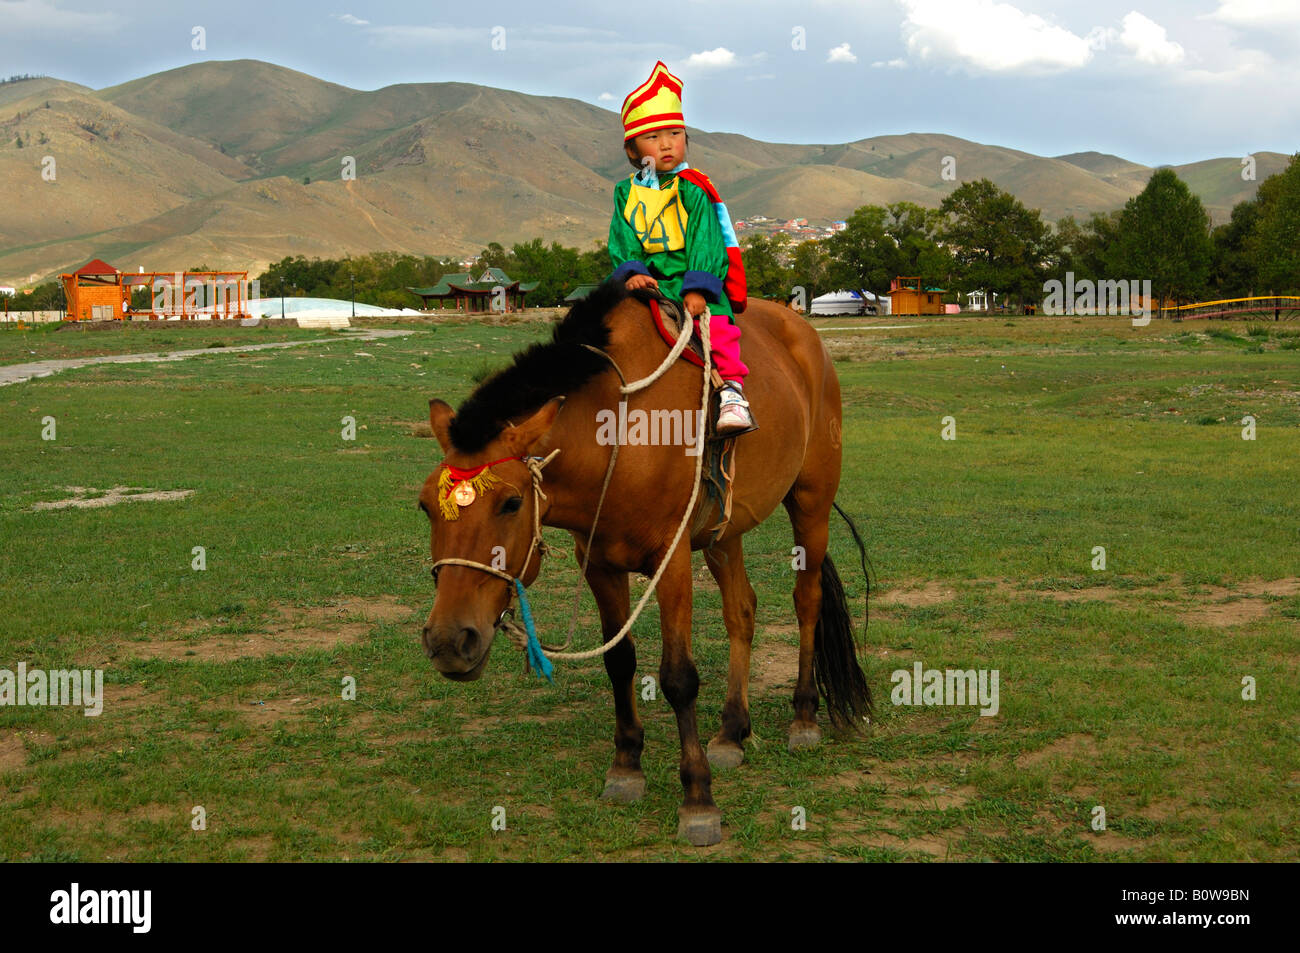 Four-year-old girl riding a horse, participant in the horsemanship competitions of the Naadam Festival, Mongolia, - Stock Image